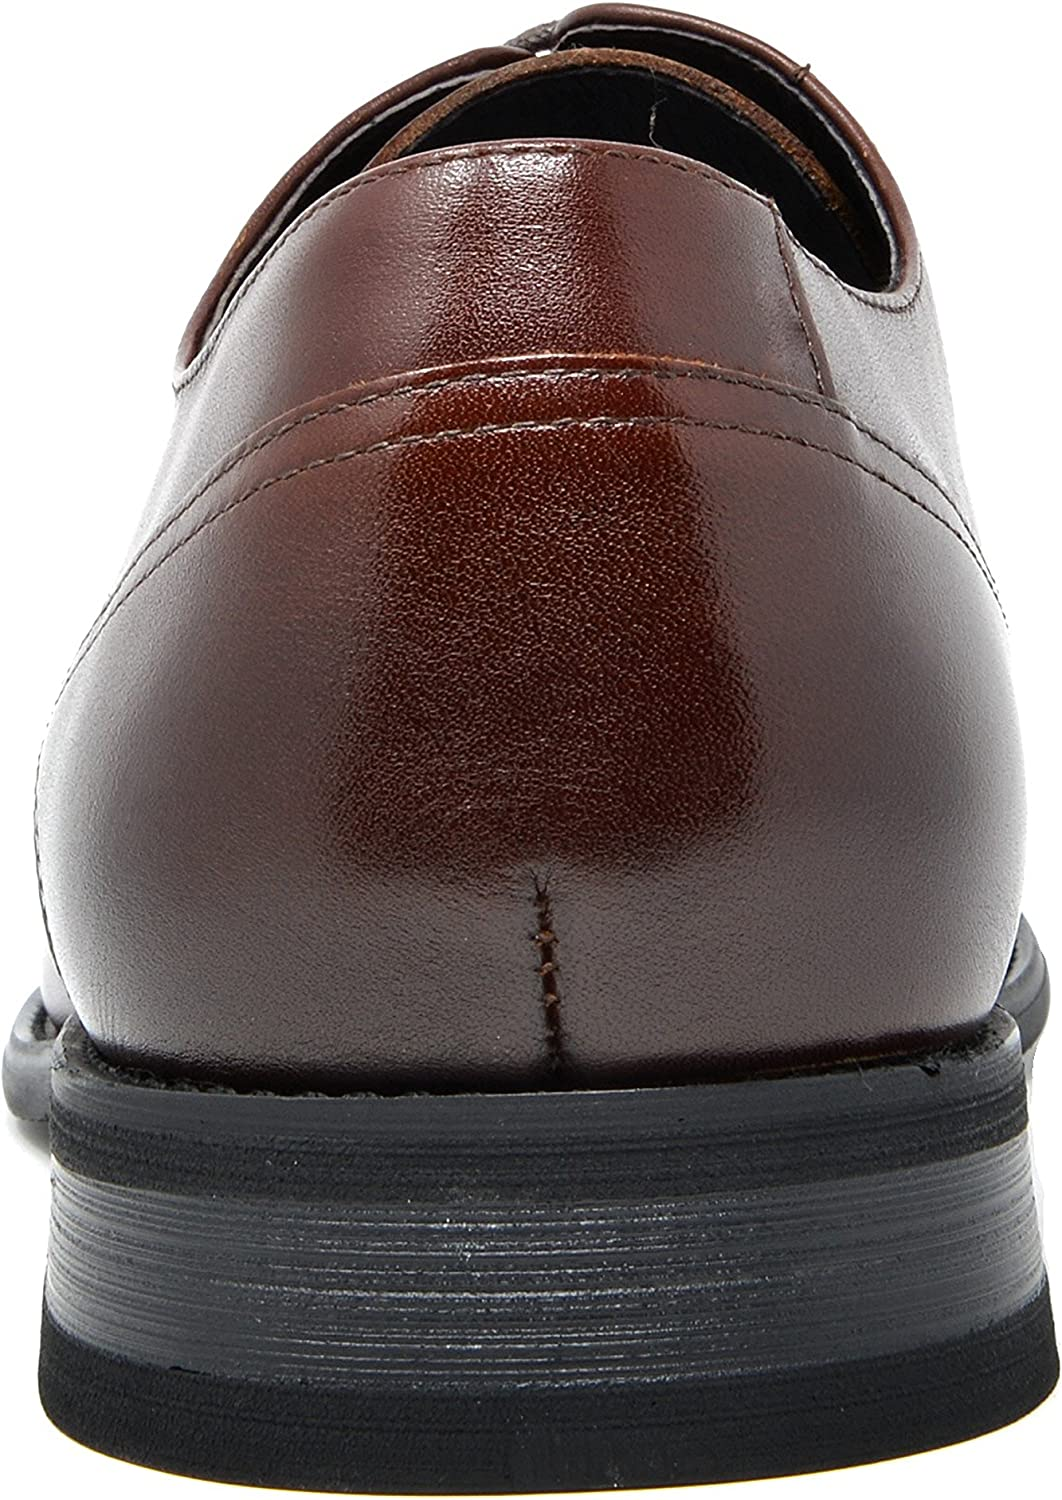 Bruno Marc Mens Classic Dress Shoes Formal Casual Leather Oxford